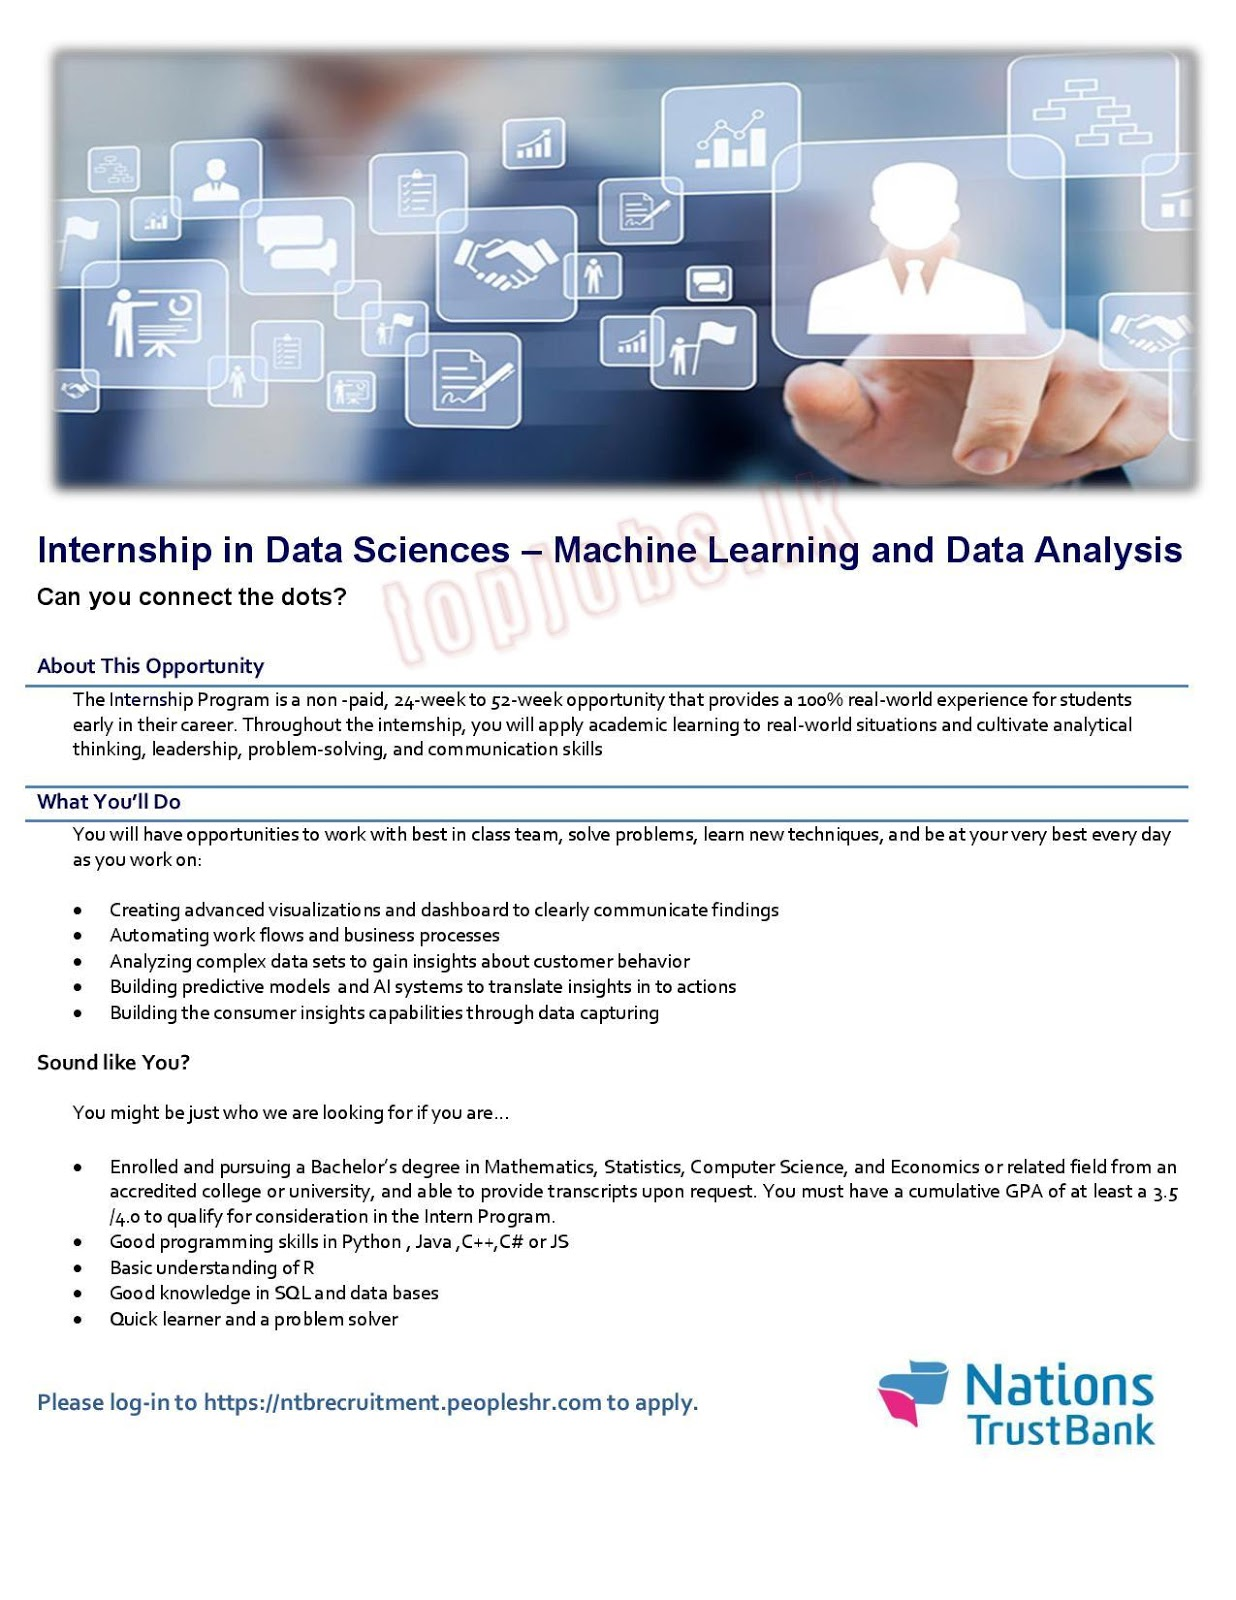 Internship for Data Sciences and Machine Learning and Data